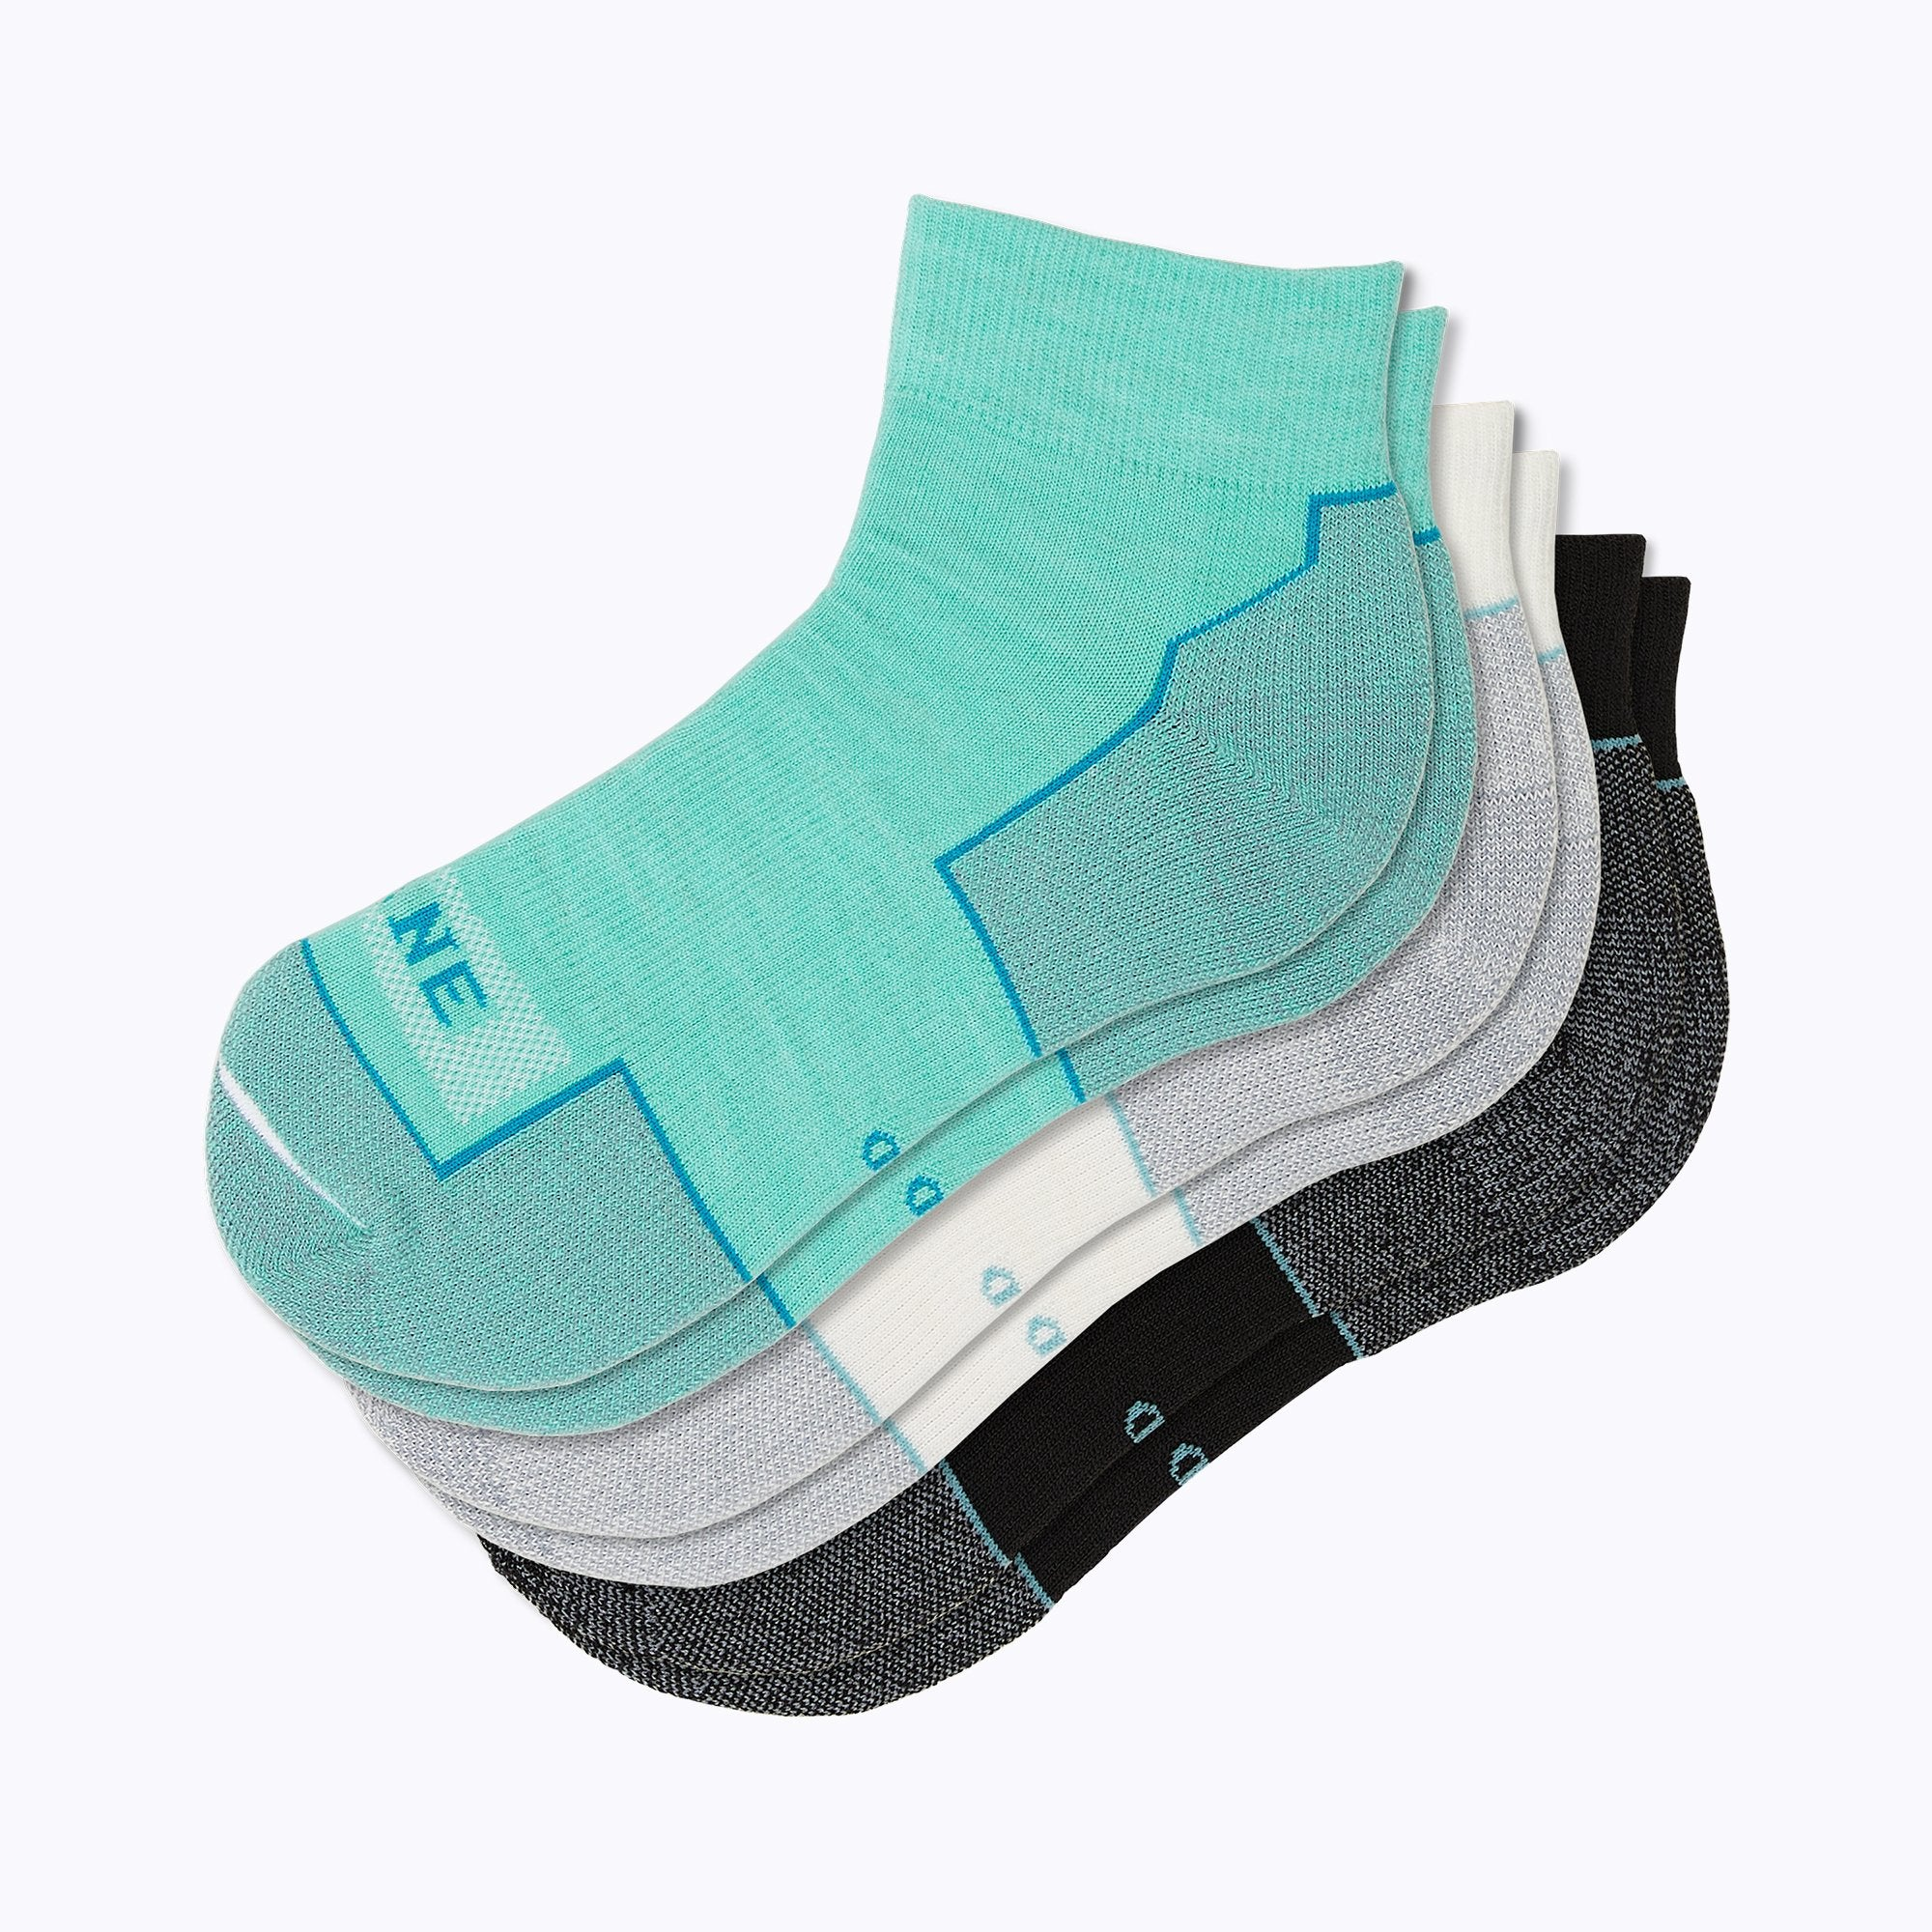 Everyday 3 Pack Mix Women's Qtr Socks -  by Canyon x Lane Socks